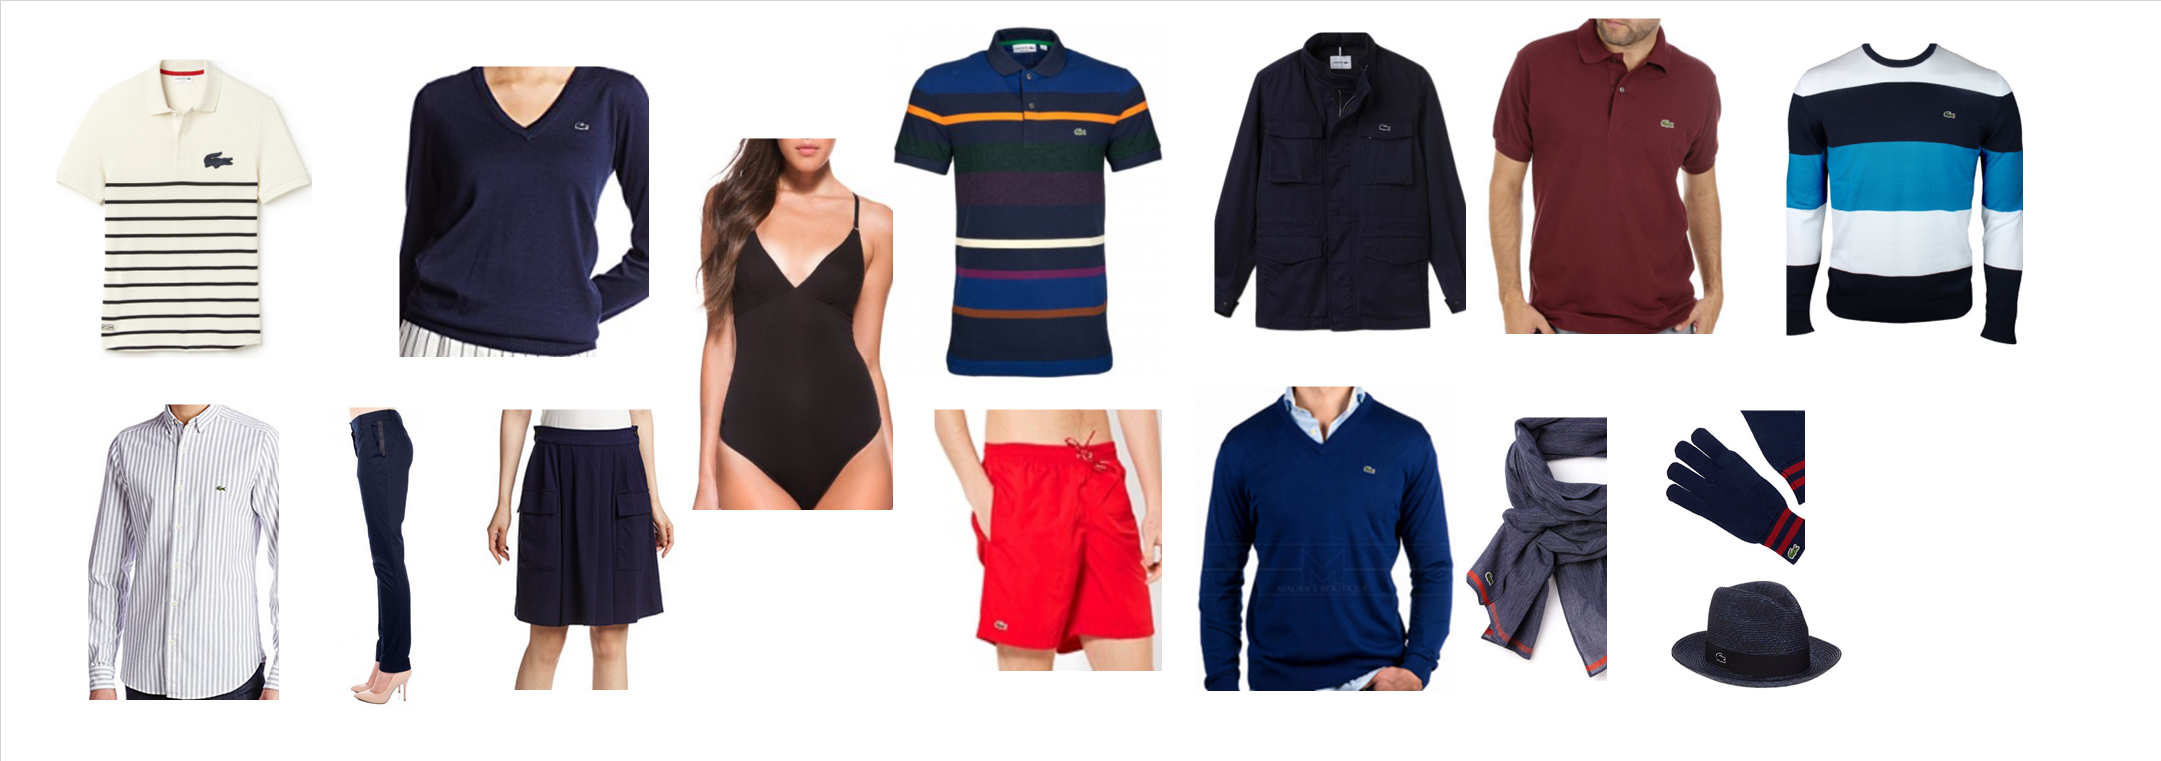 33213 - LACOSTE Apparel and Accessories for Men and Women Europe